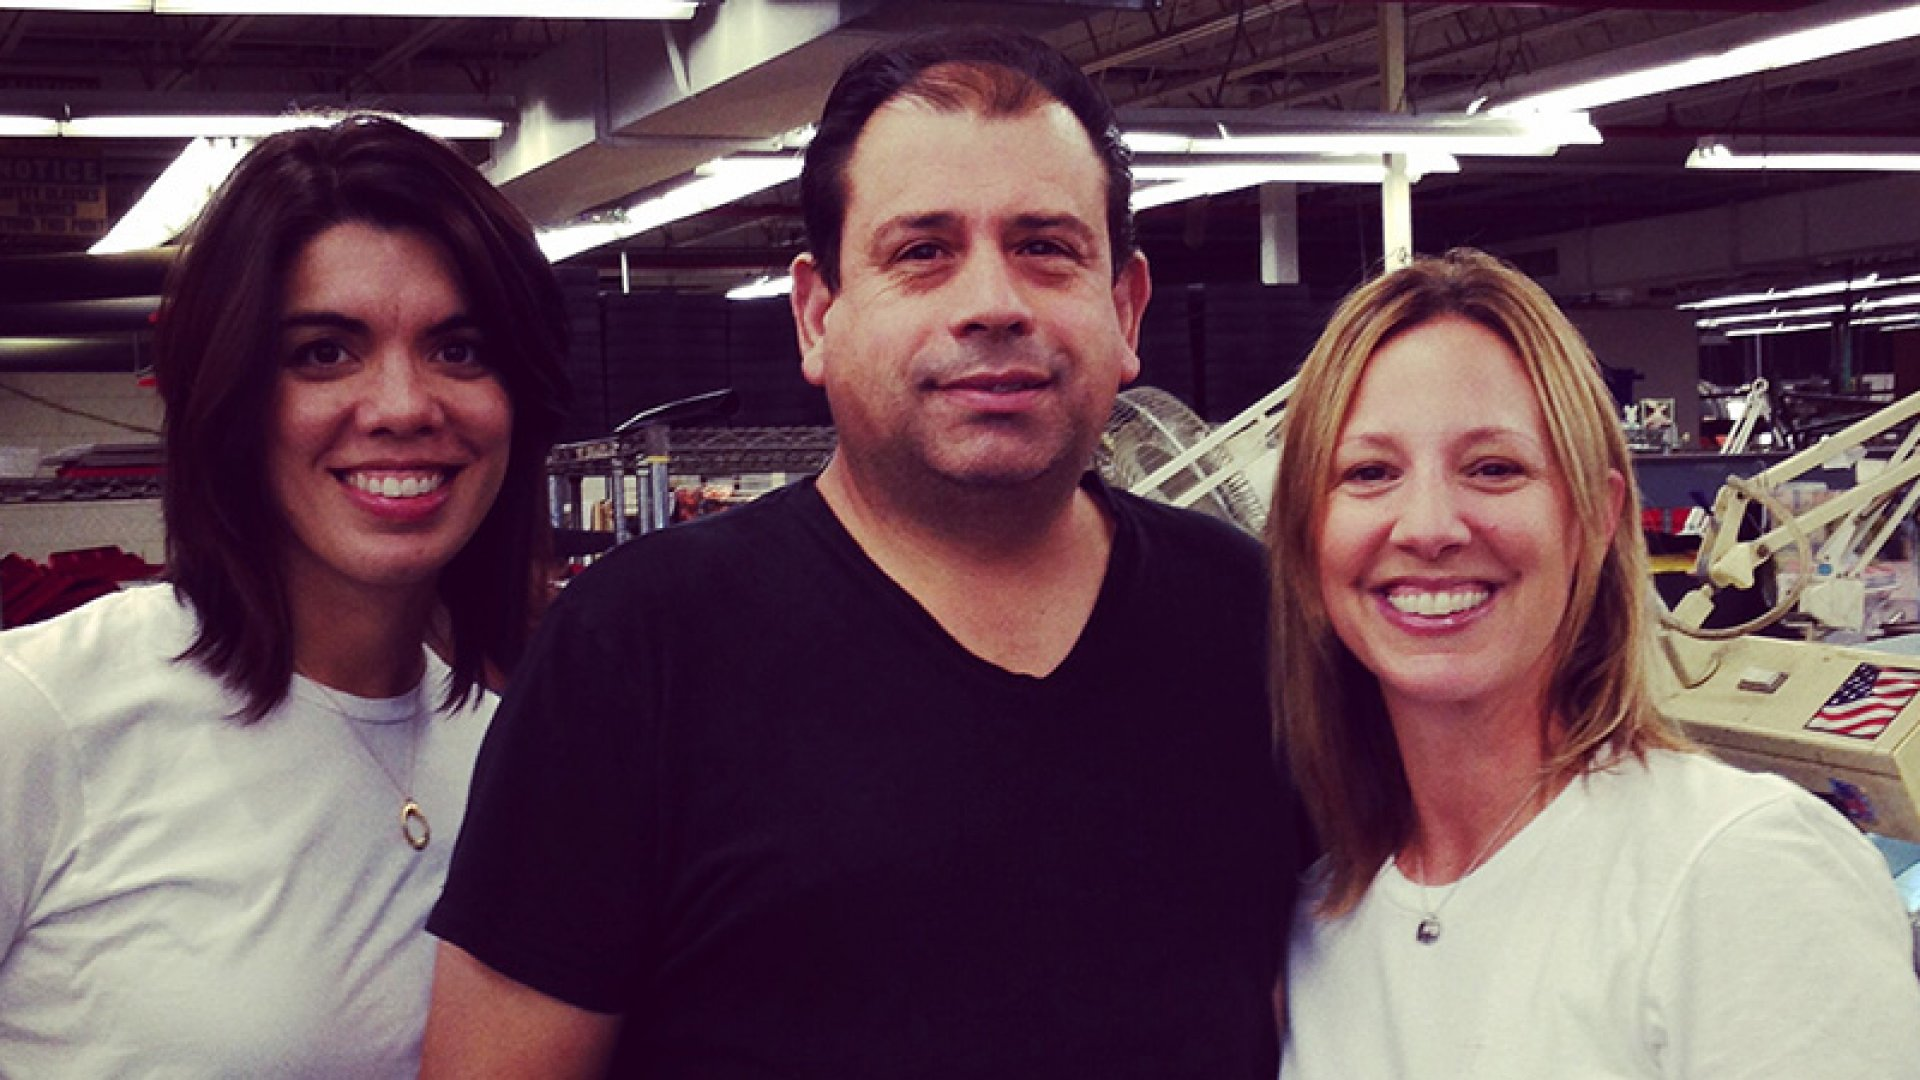 The Tiny Tags team: Director of operations Candice Kilfoyle (left) and CEO Melissa Clayton (right) flank Eduardo Viveiros, the lead emblematic polisher, at the headquarters of their manufacturing facility.